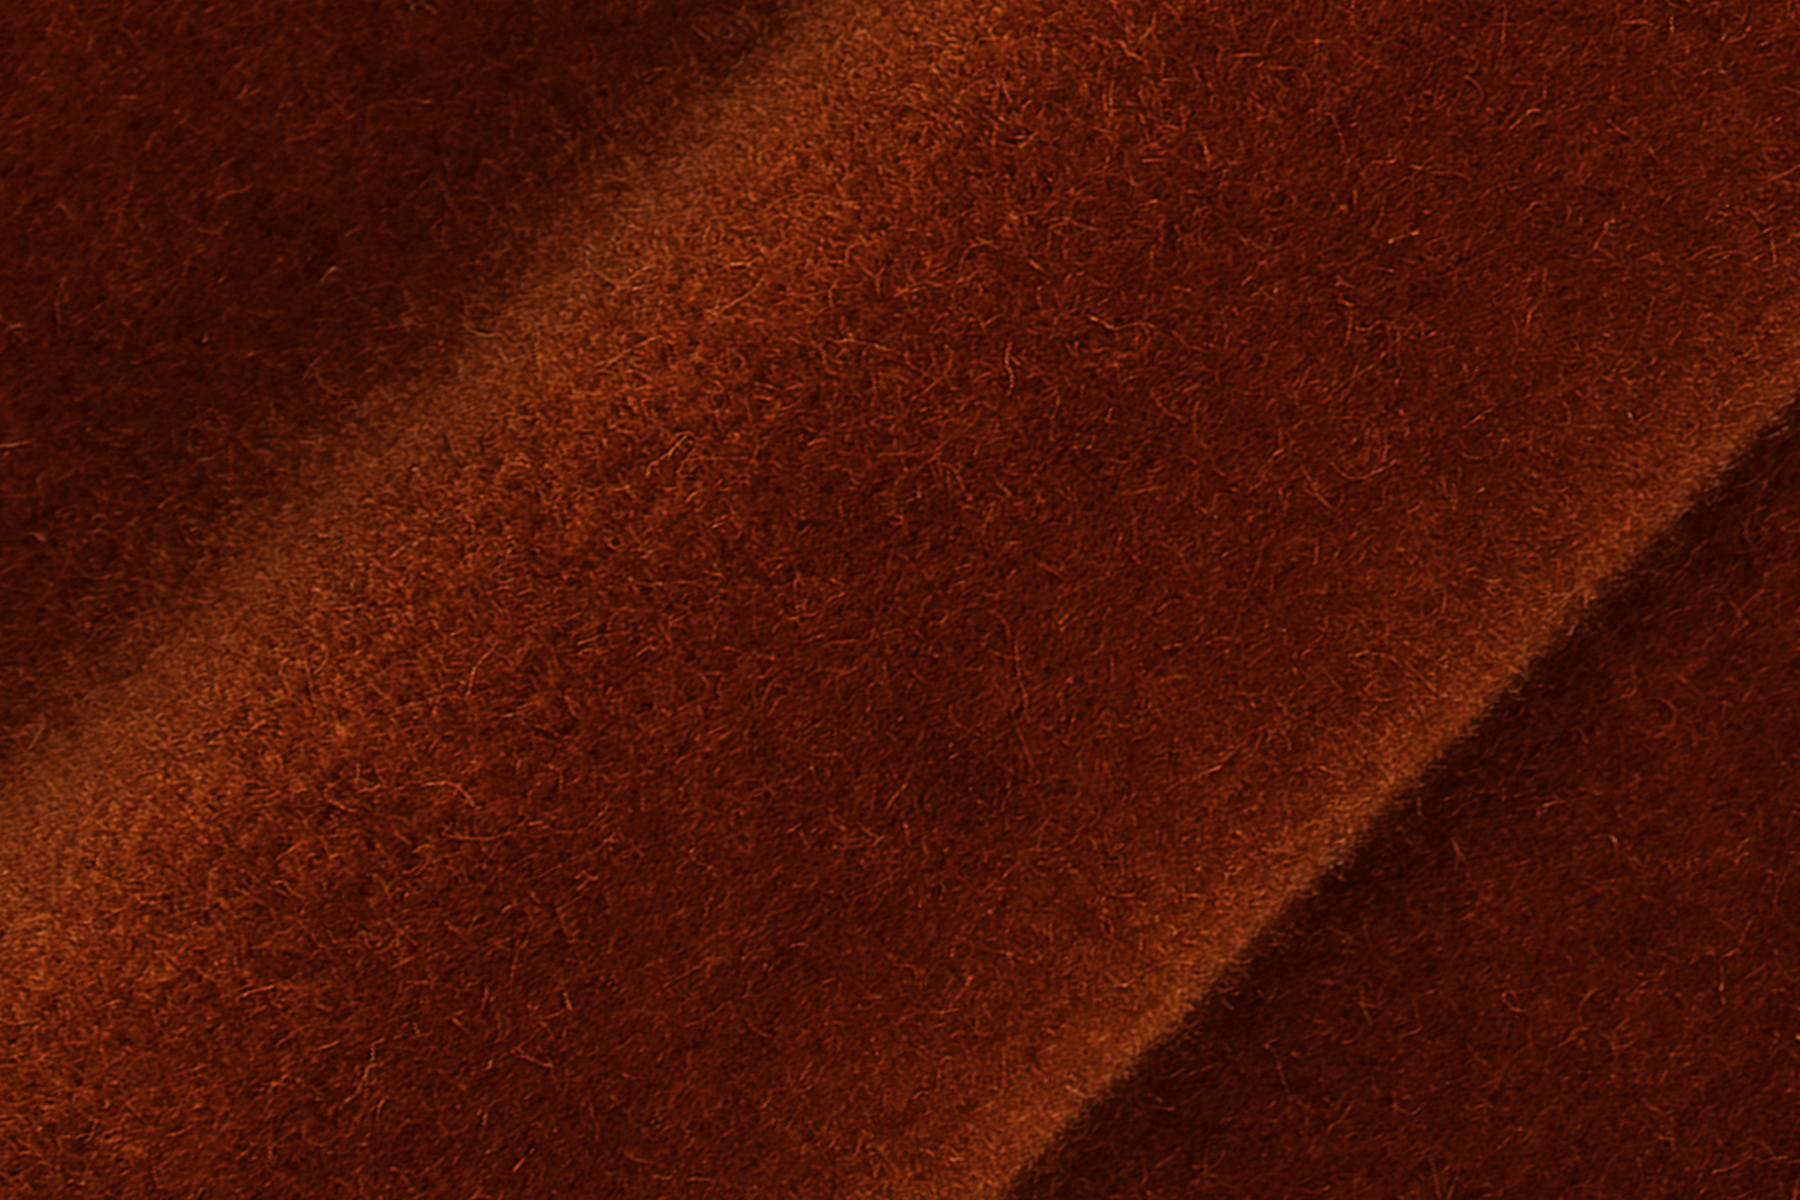 LUX VELVET 0262 DEEP OCHRE Fabric by KOKET